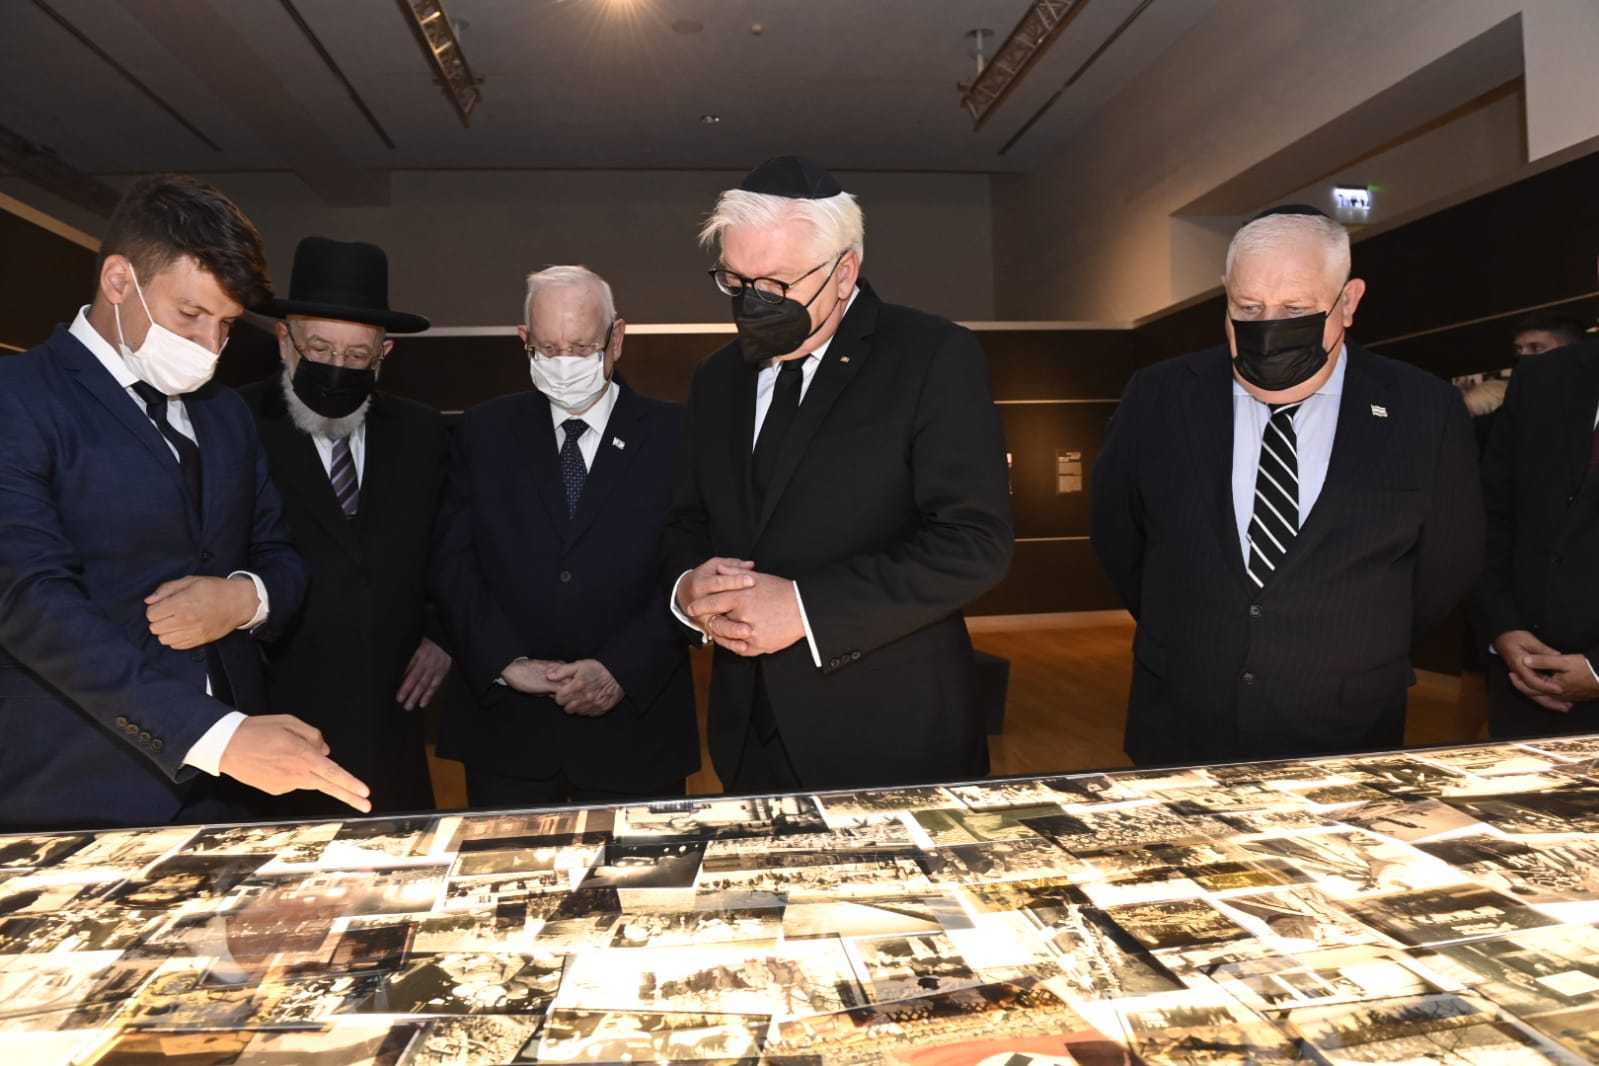 """(L-R) Yad Vashem Council Chairman Israel Meir Lau, President of Israel Reuven Rivlin, President of Germany Frank-Walter Steinmeier and Acting Yad Vashem Chairman Ronen Plot tour the """"Flashes of Memory: Photography during the Holocaust"""" exhibition"""